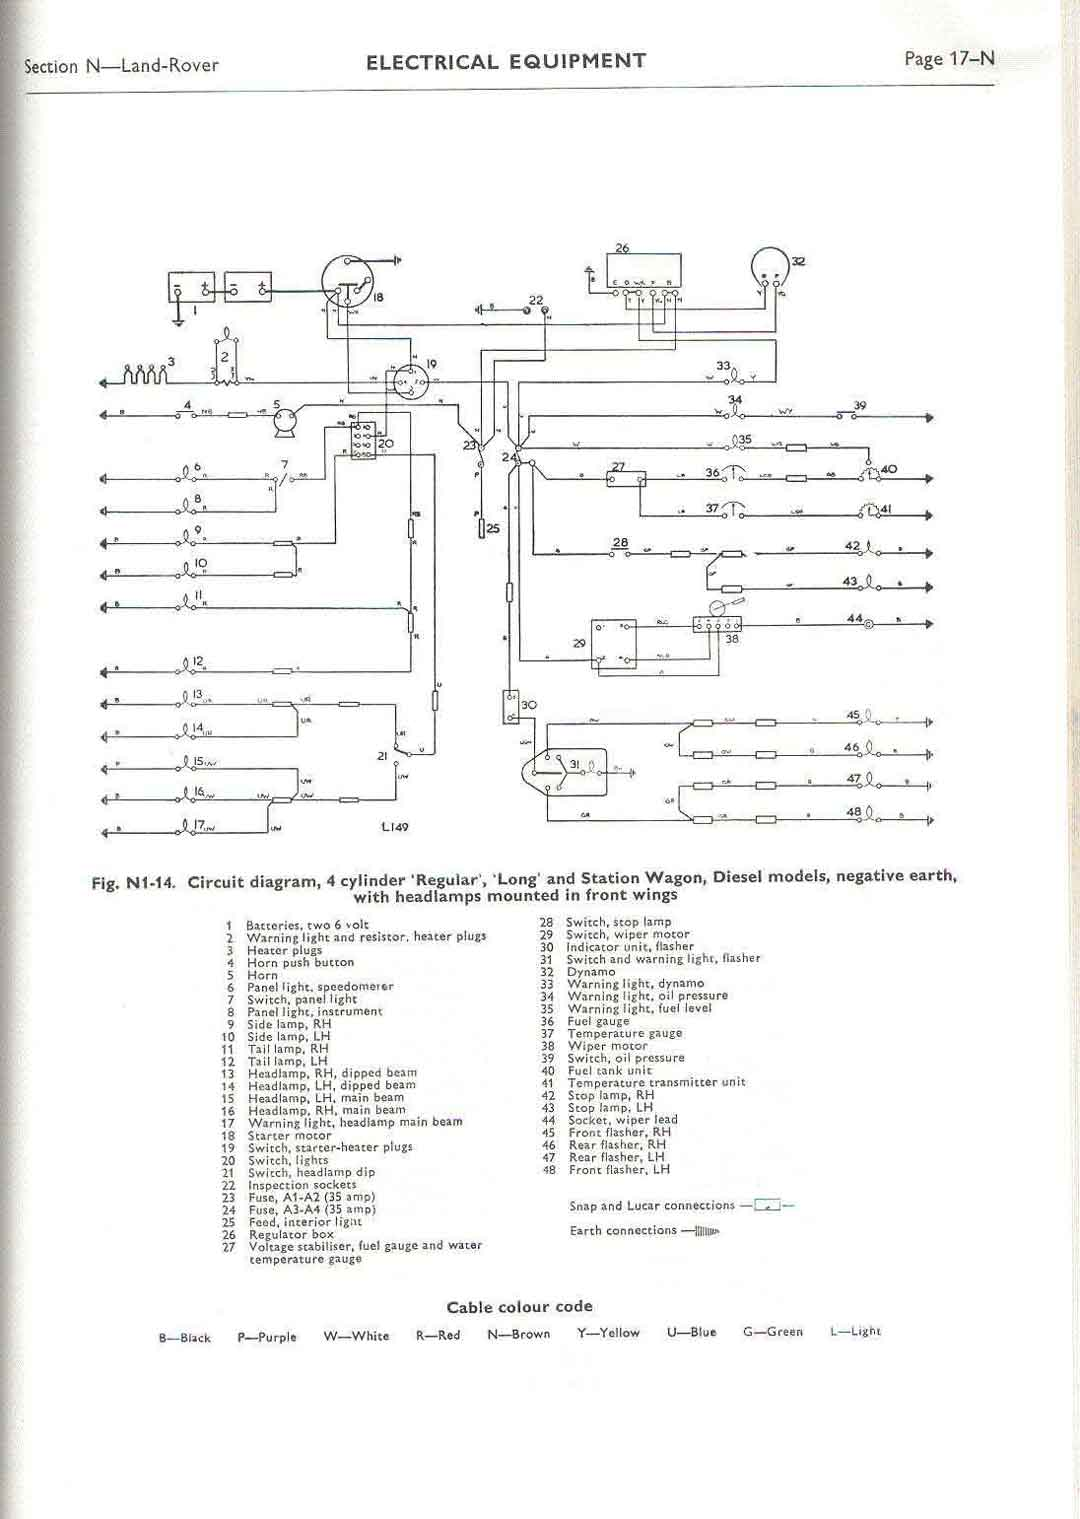 land rover series 2a wiring diagram negative earth land land rover faq repair maintenance series electrical on land rover series 2a wiring diagram negative earth